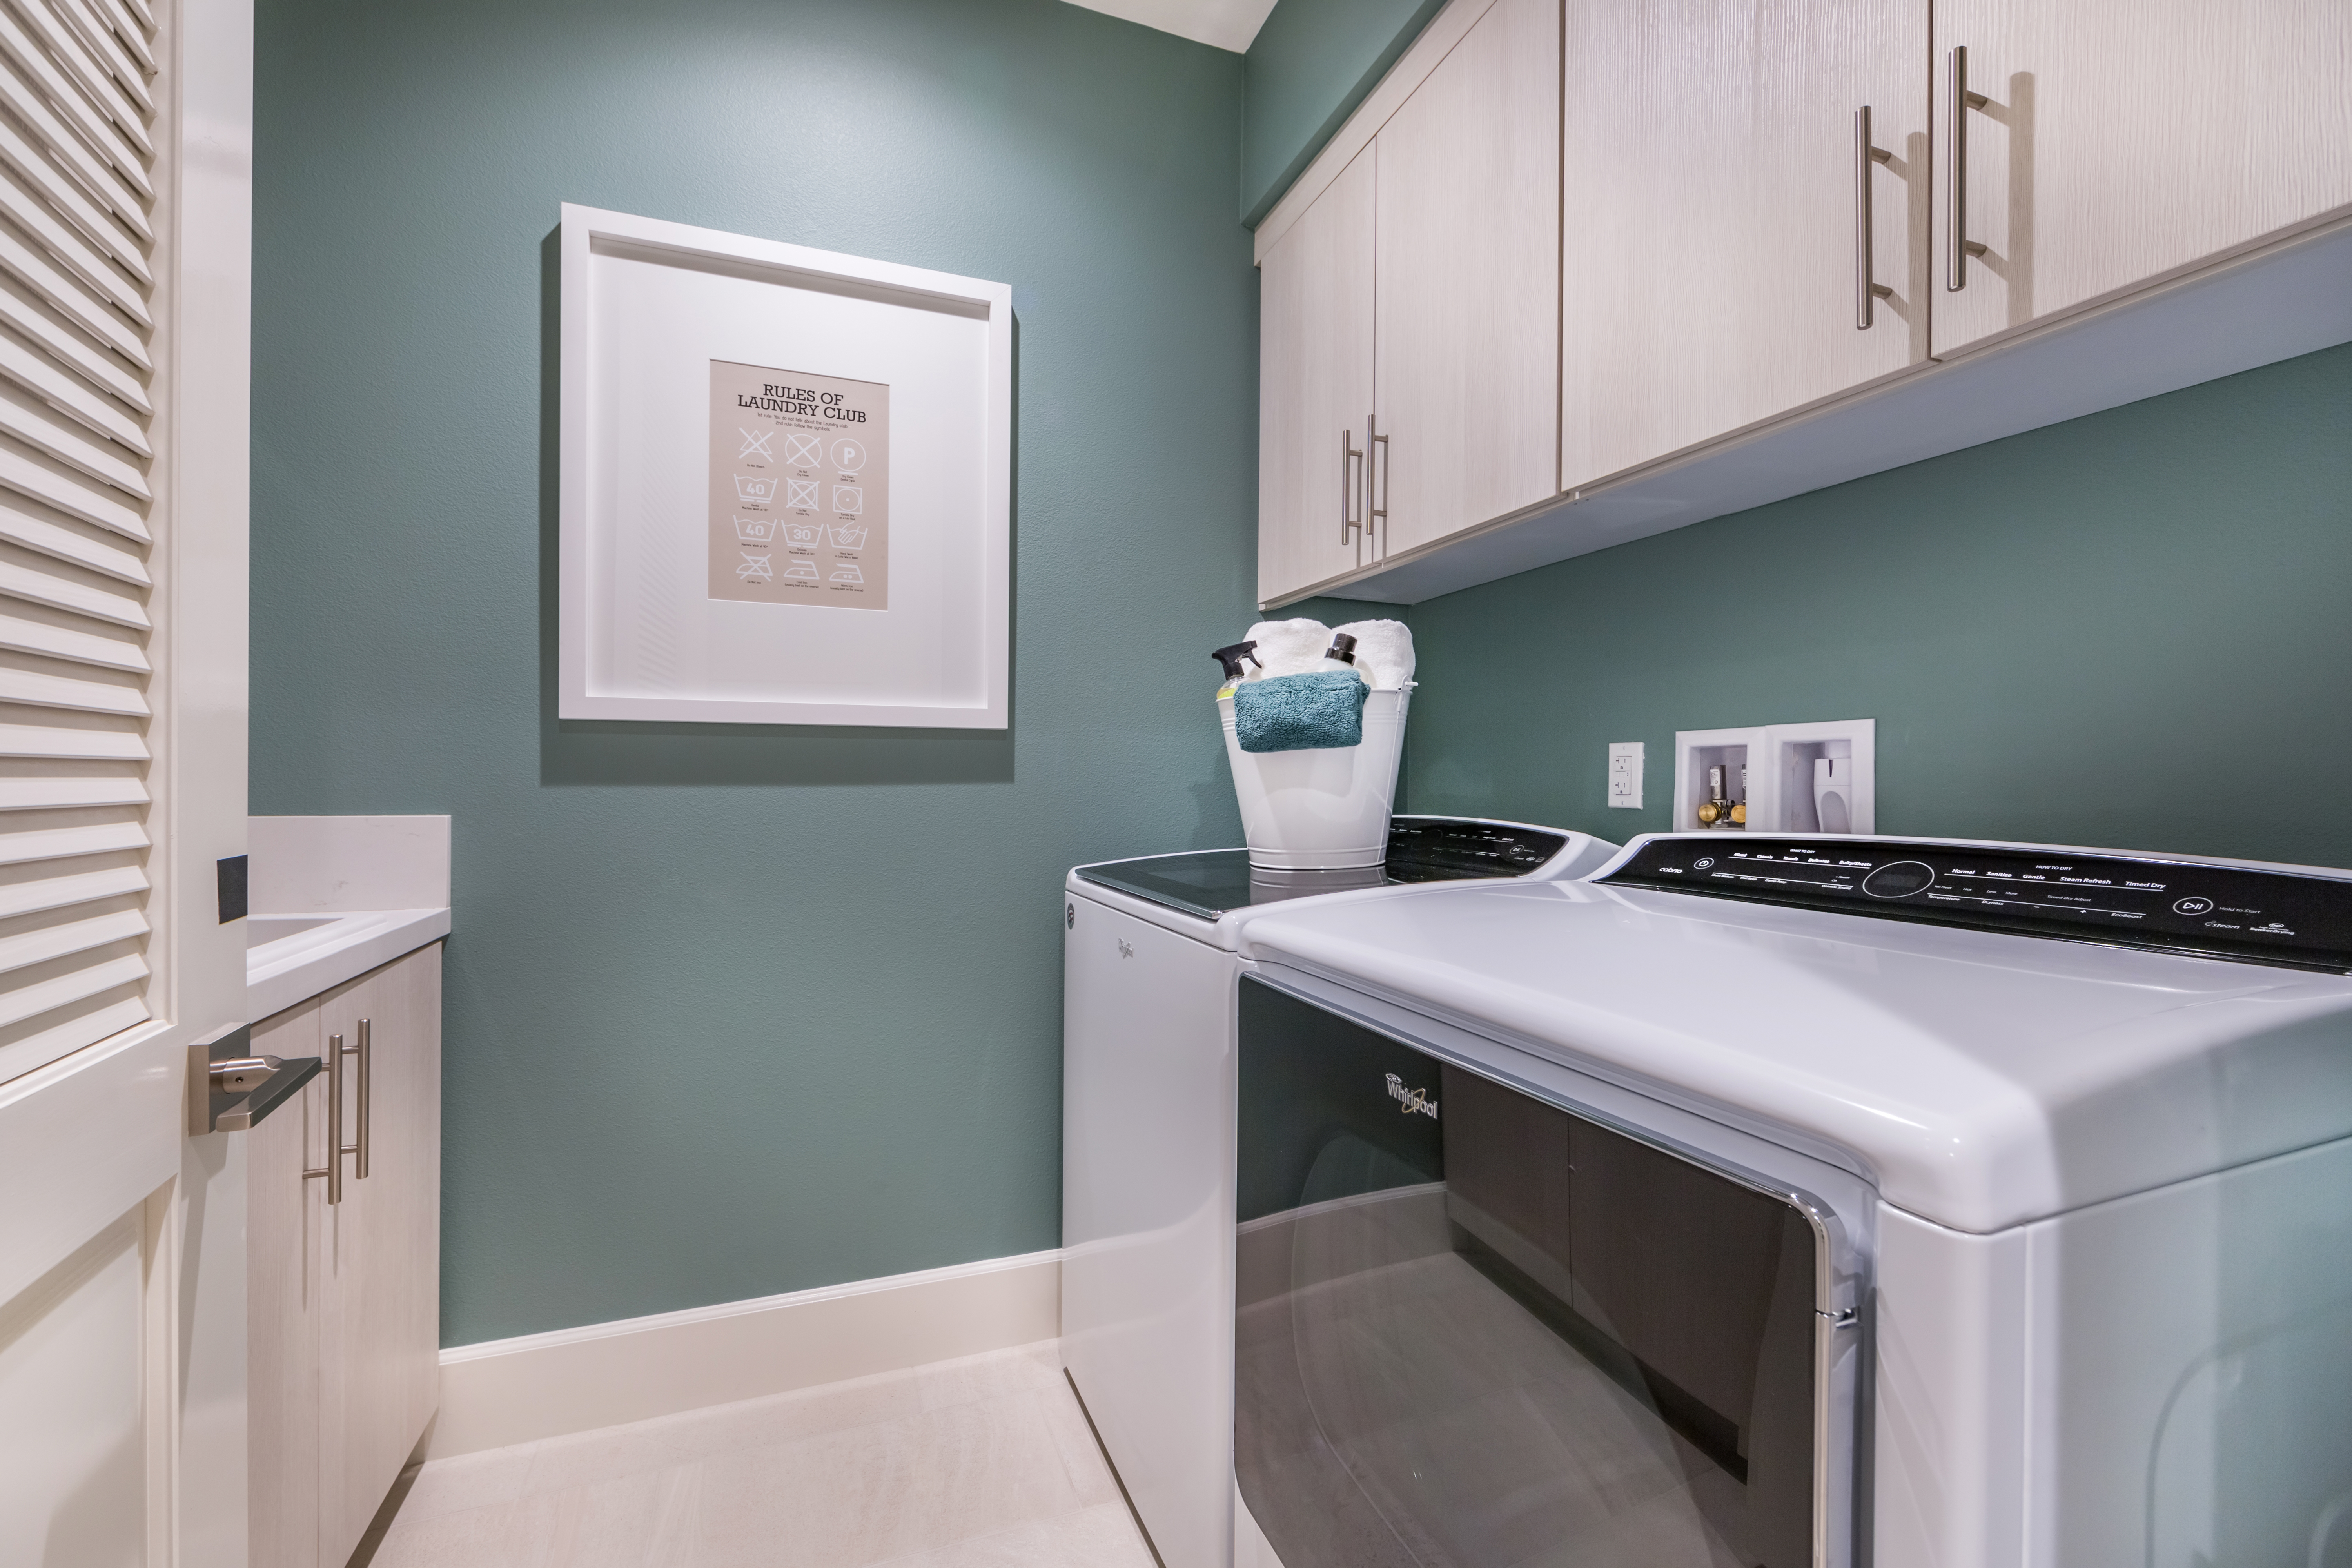 Laundry Room at Verdi Residence 1 in Irvine